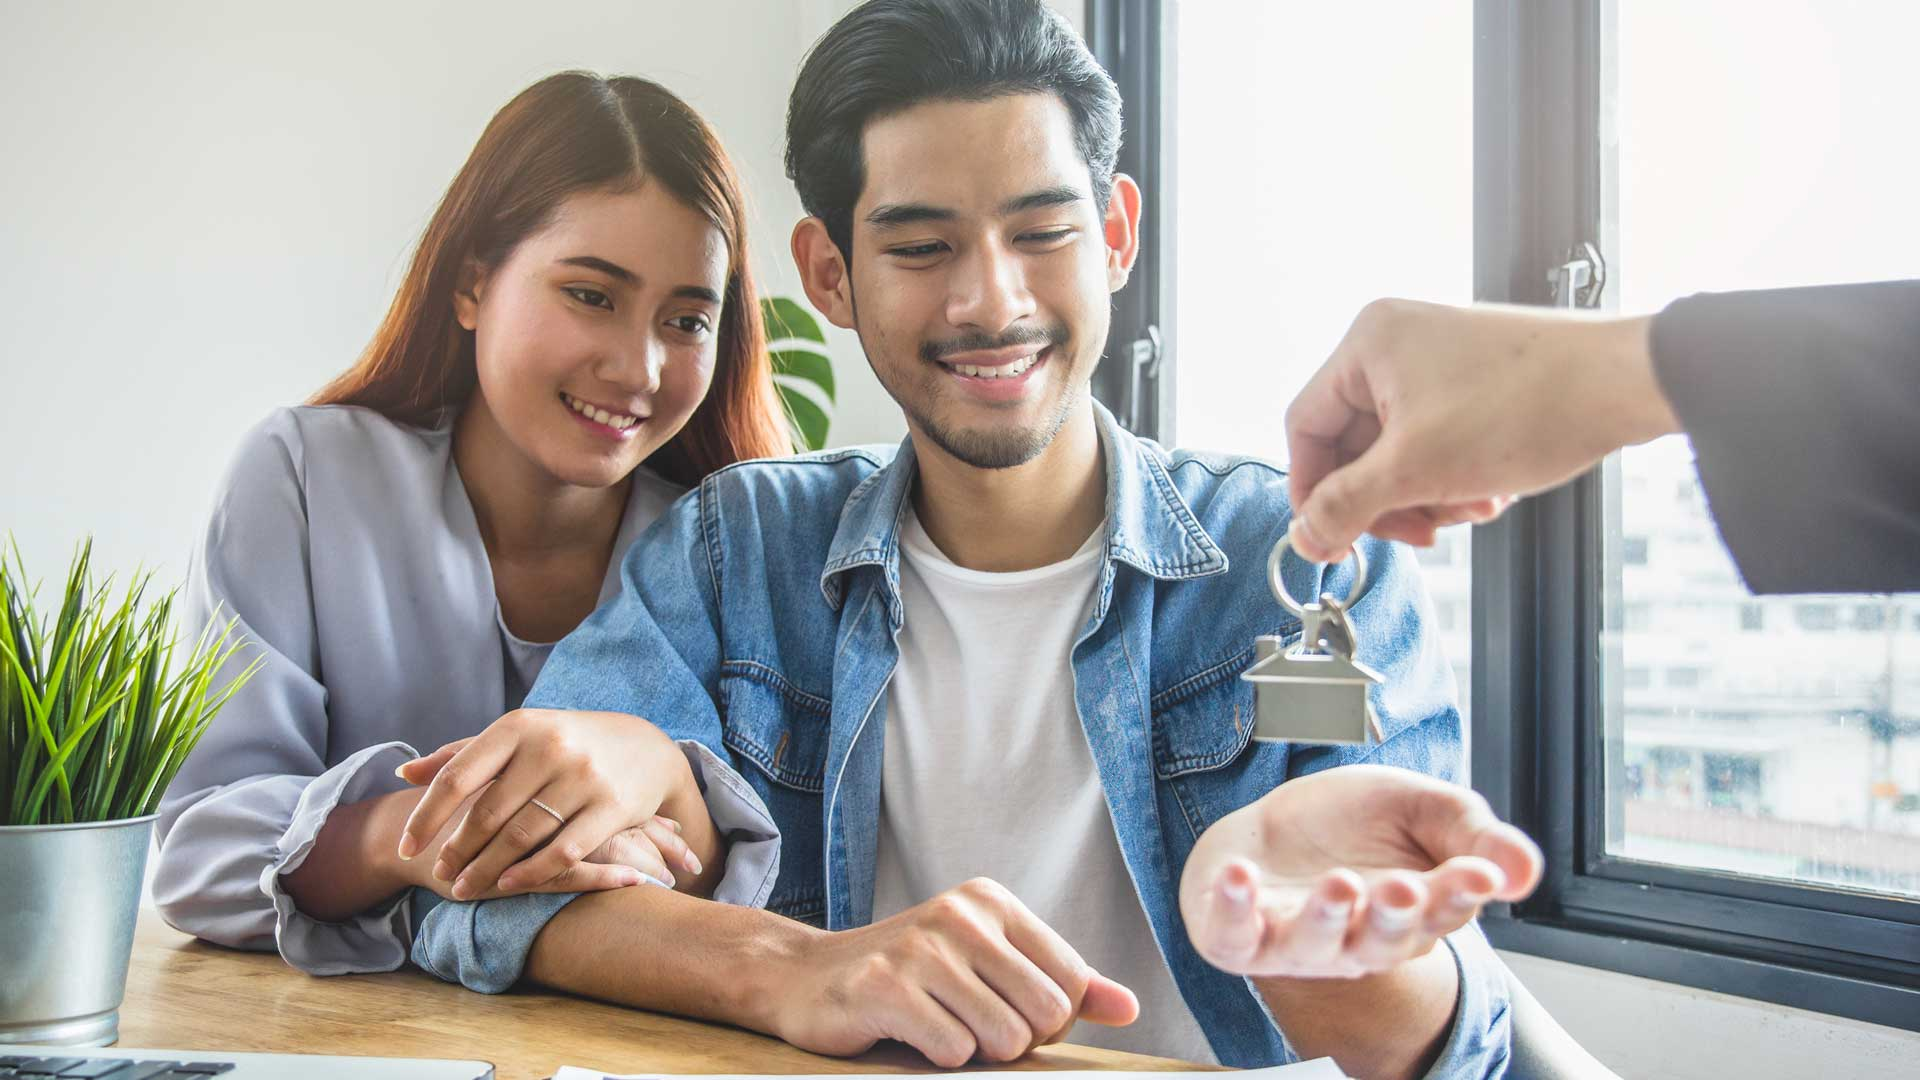 Post: 5 Rules Every Landlord Should Live By